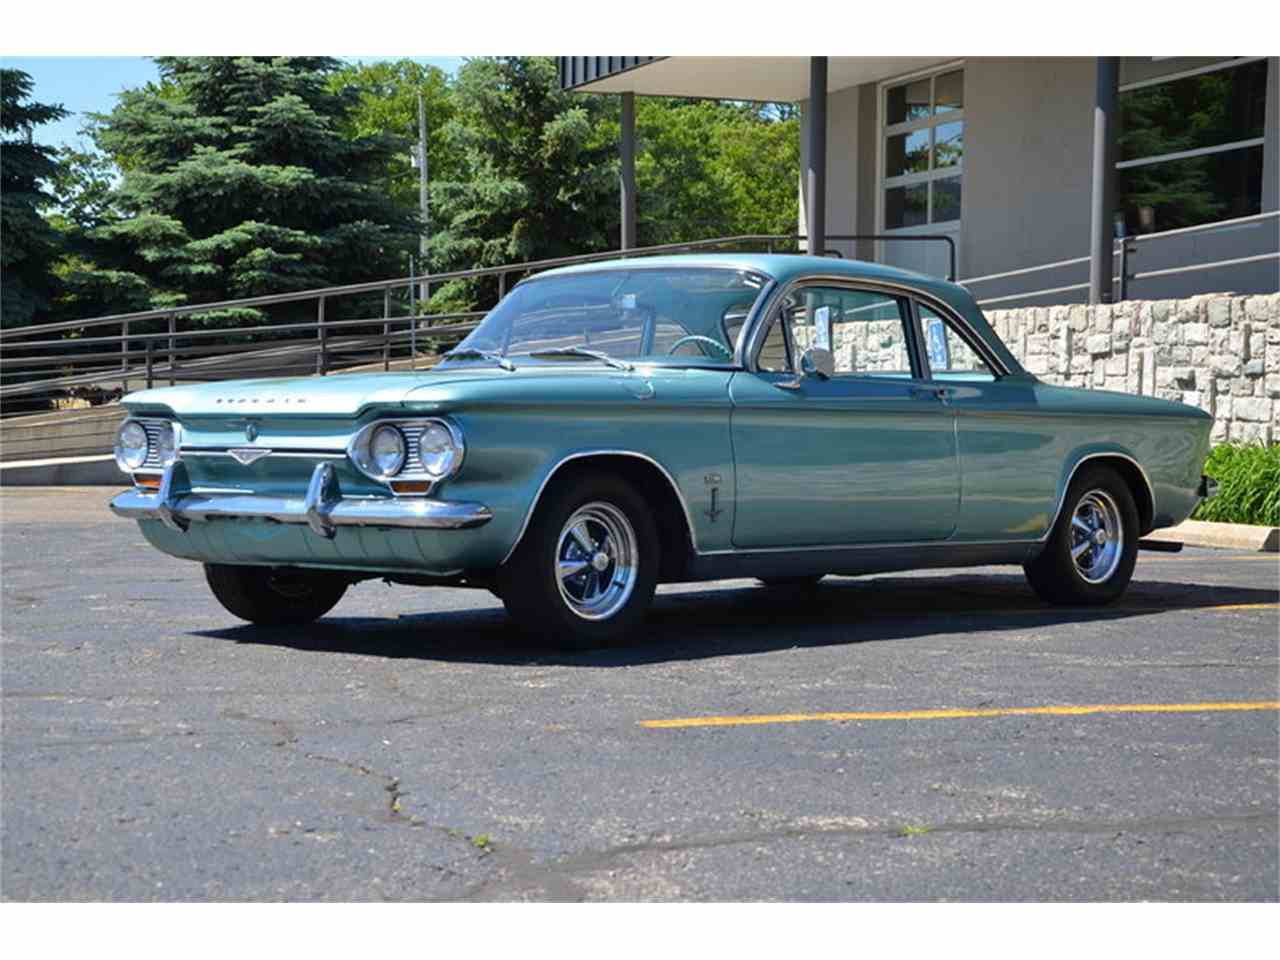 All Chevy chevy corvair monza : 1964 Chevrolet Corvair Monza for Sale | ClassicCars.com | CC-990462